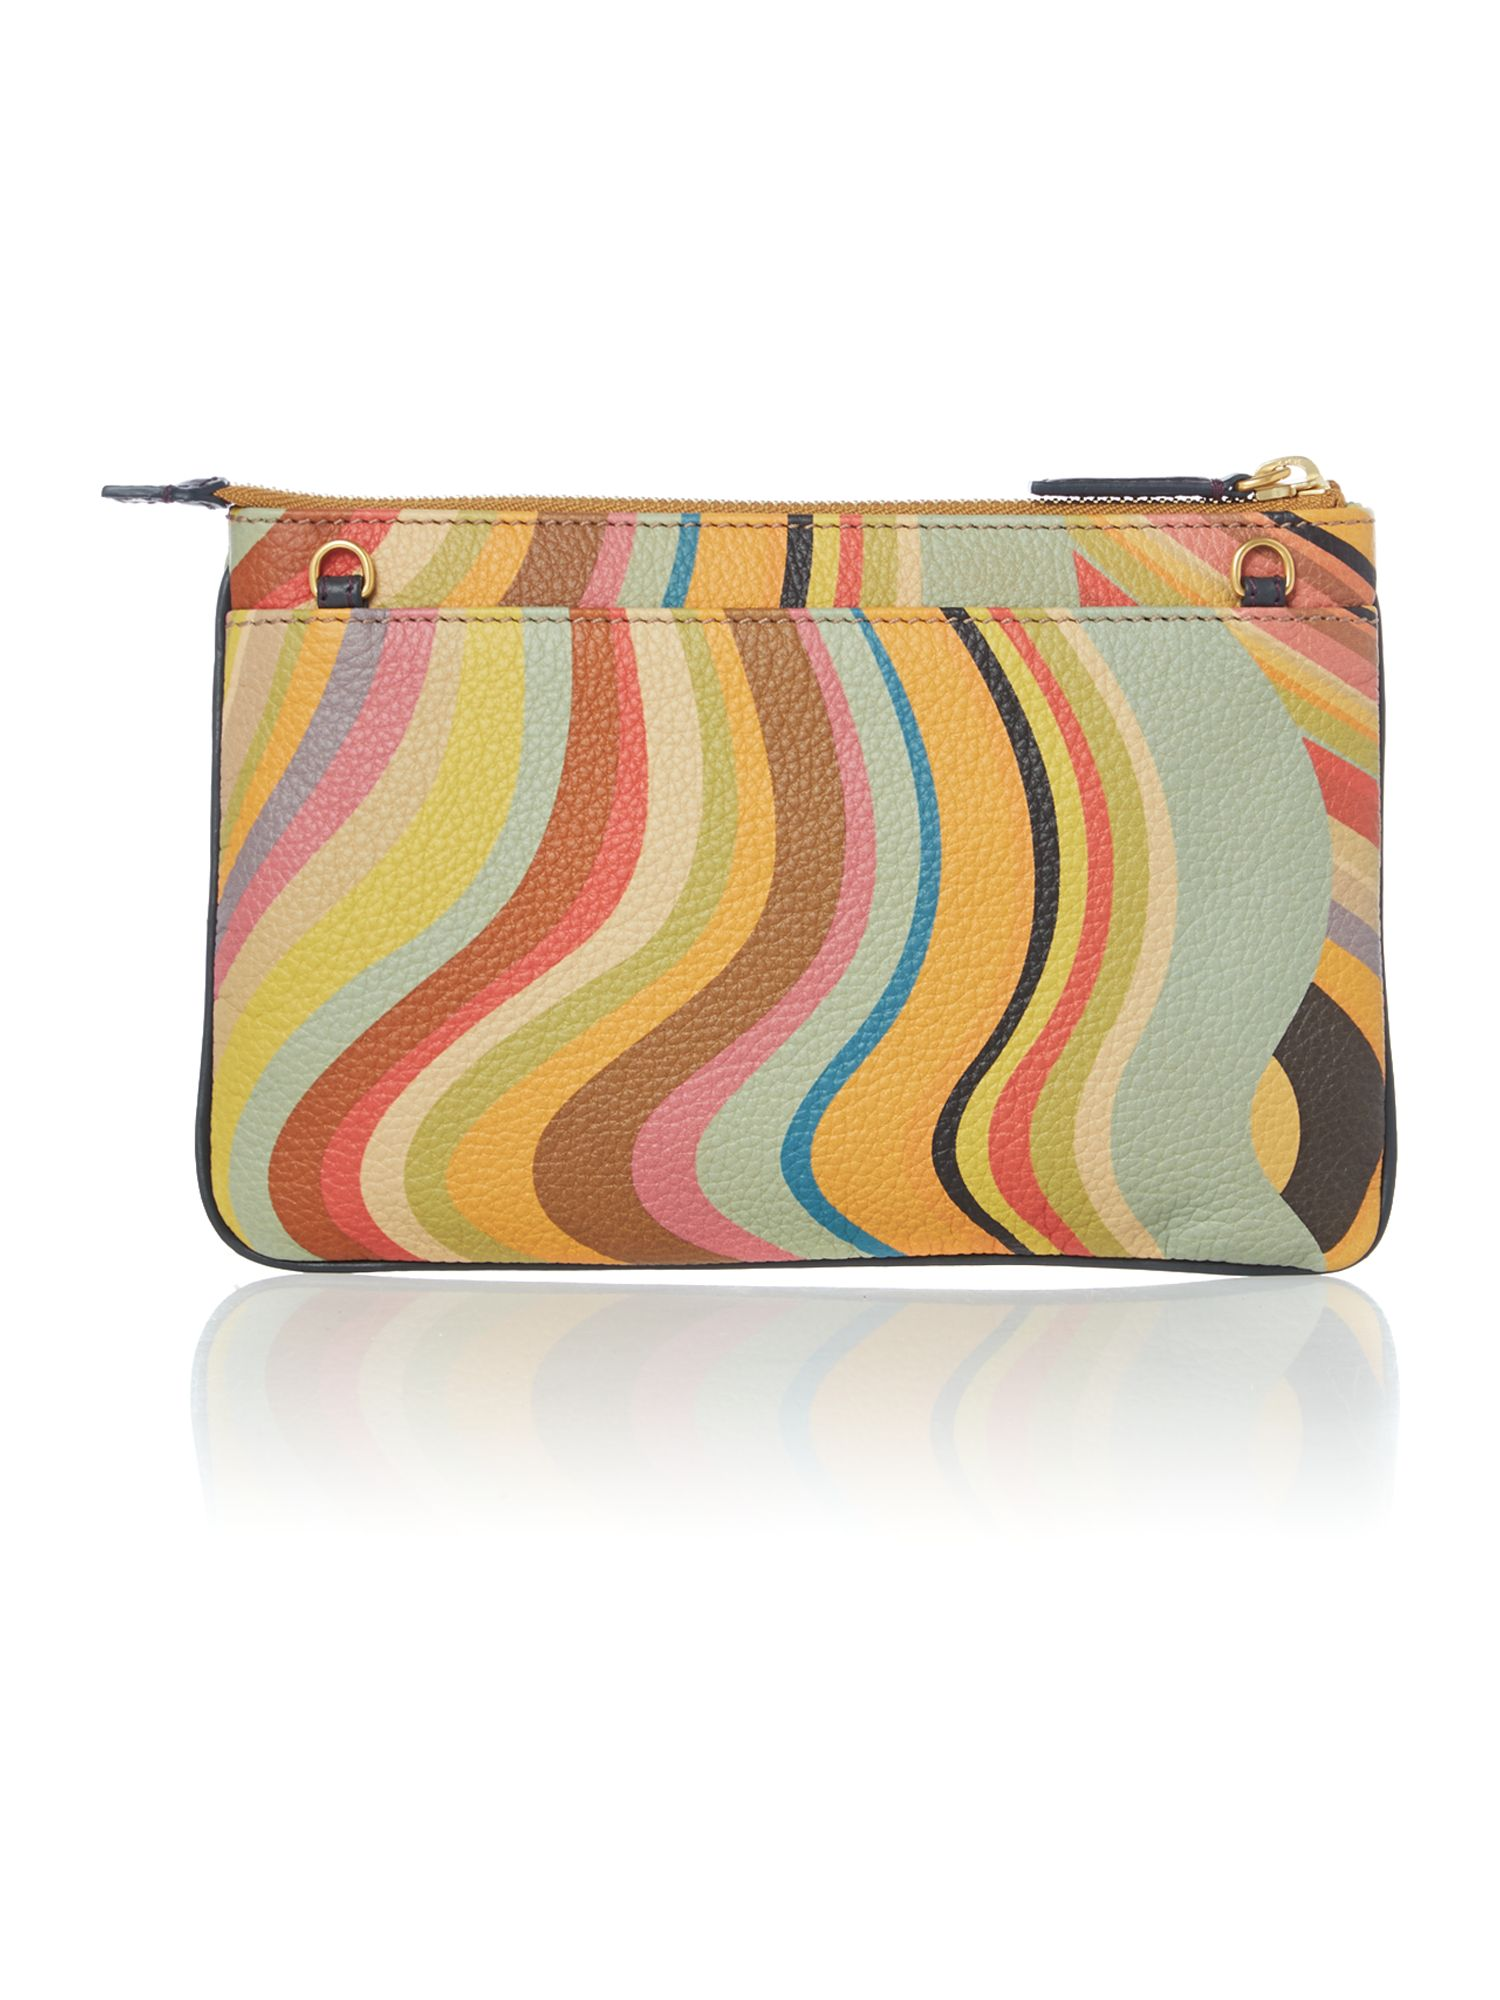 Swirl mini cross body bag